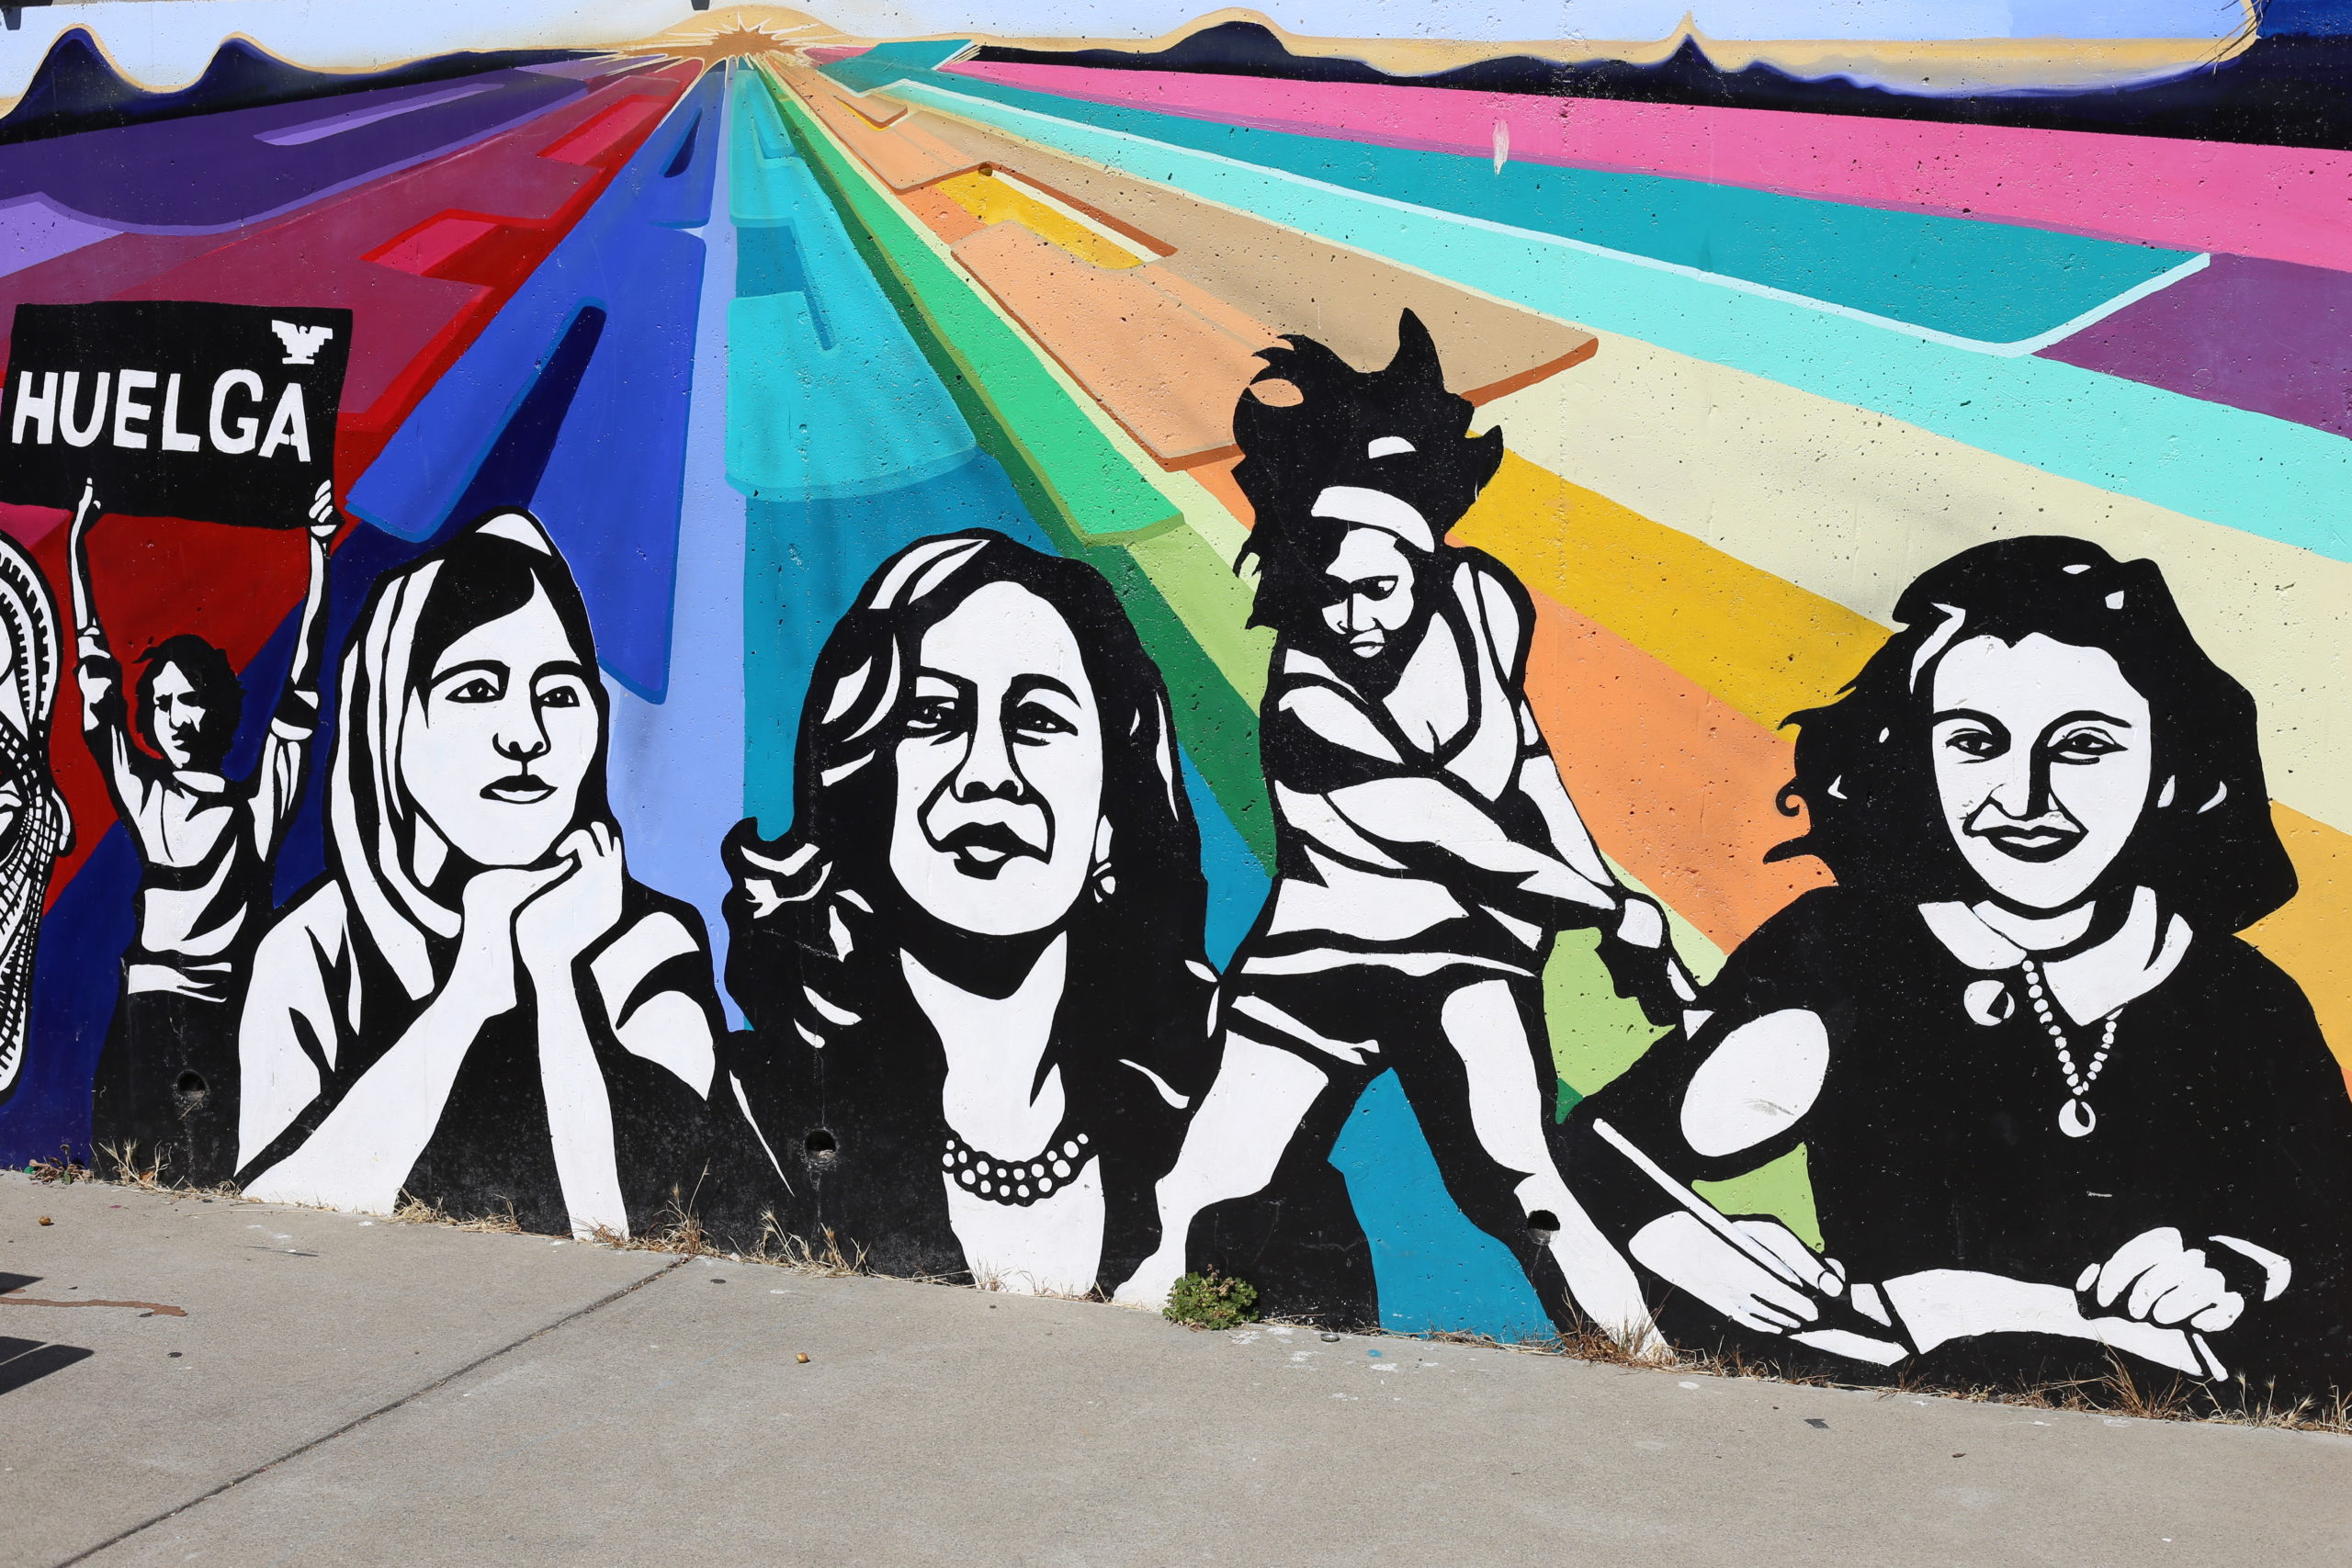 This is a photo of a mural at Thousand Oaks Elementary School featuring Vice President-Elect Kamala Harris and other women leaders.